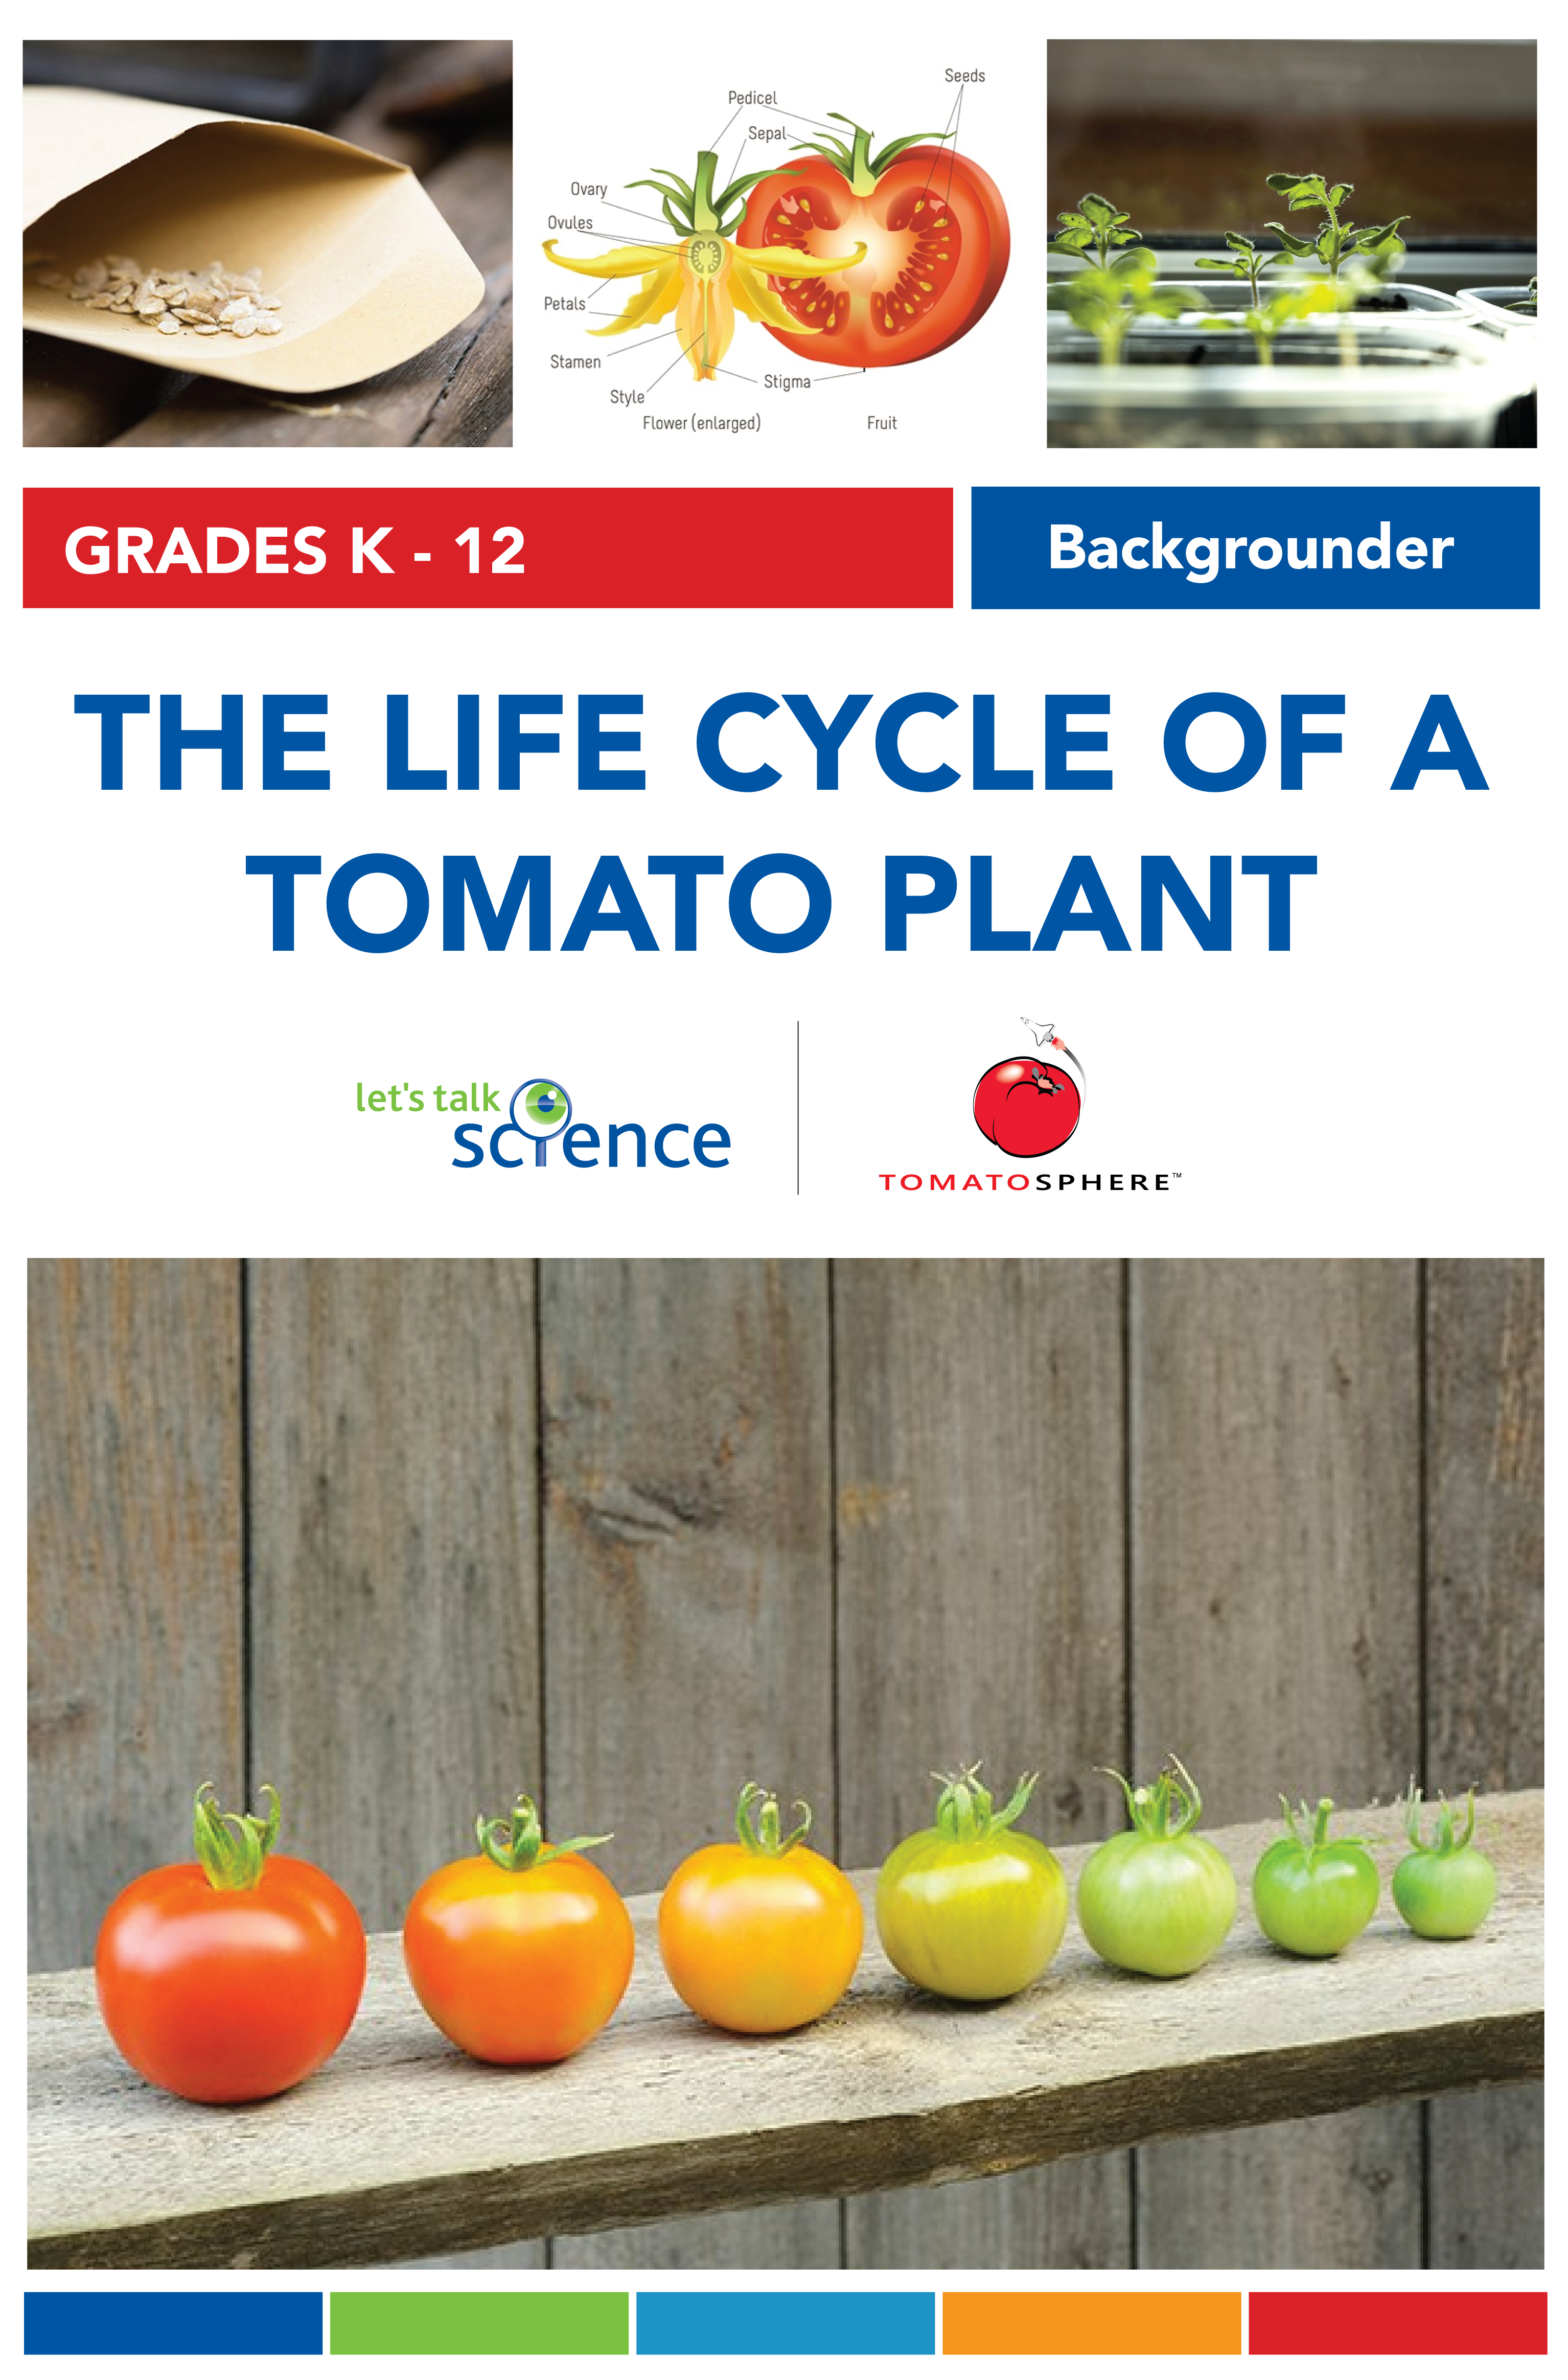 Background Information On The Life Cycle Of A Tomato Plant